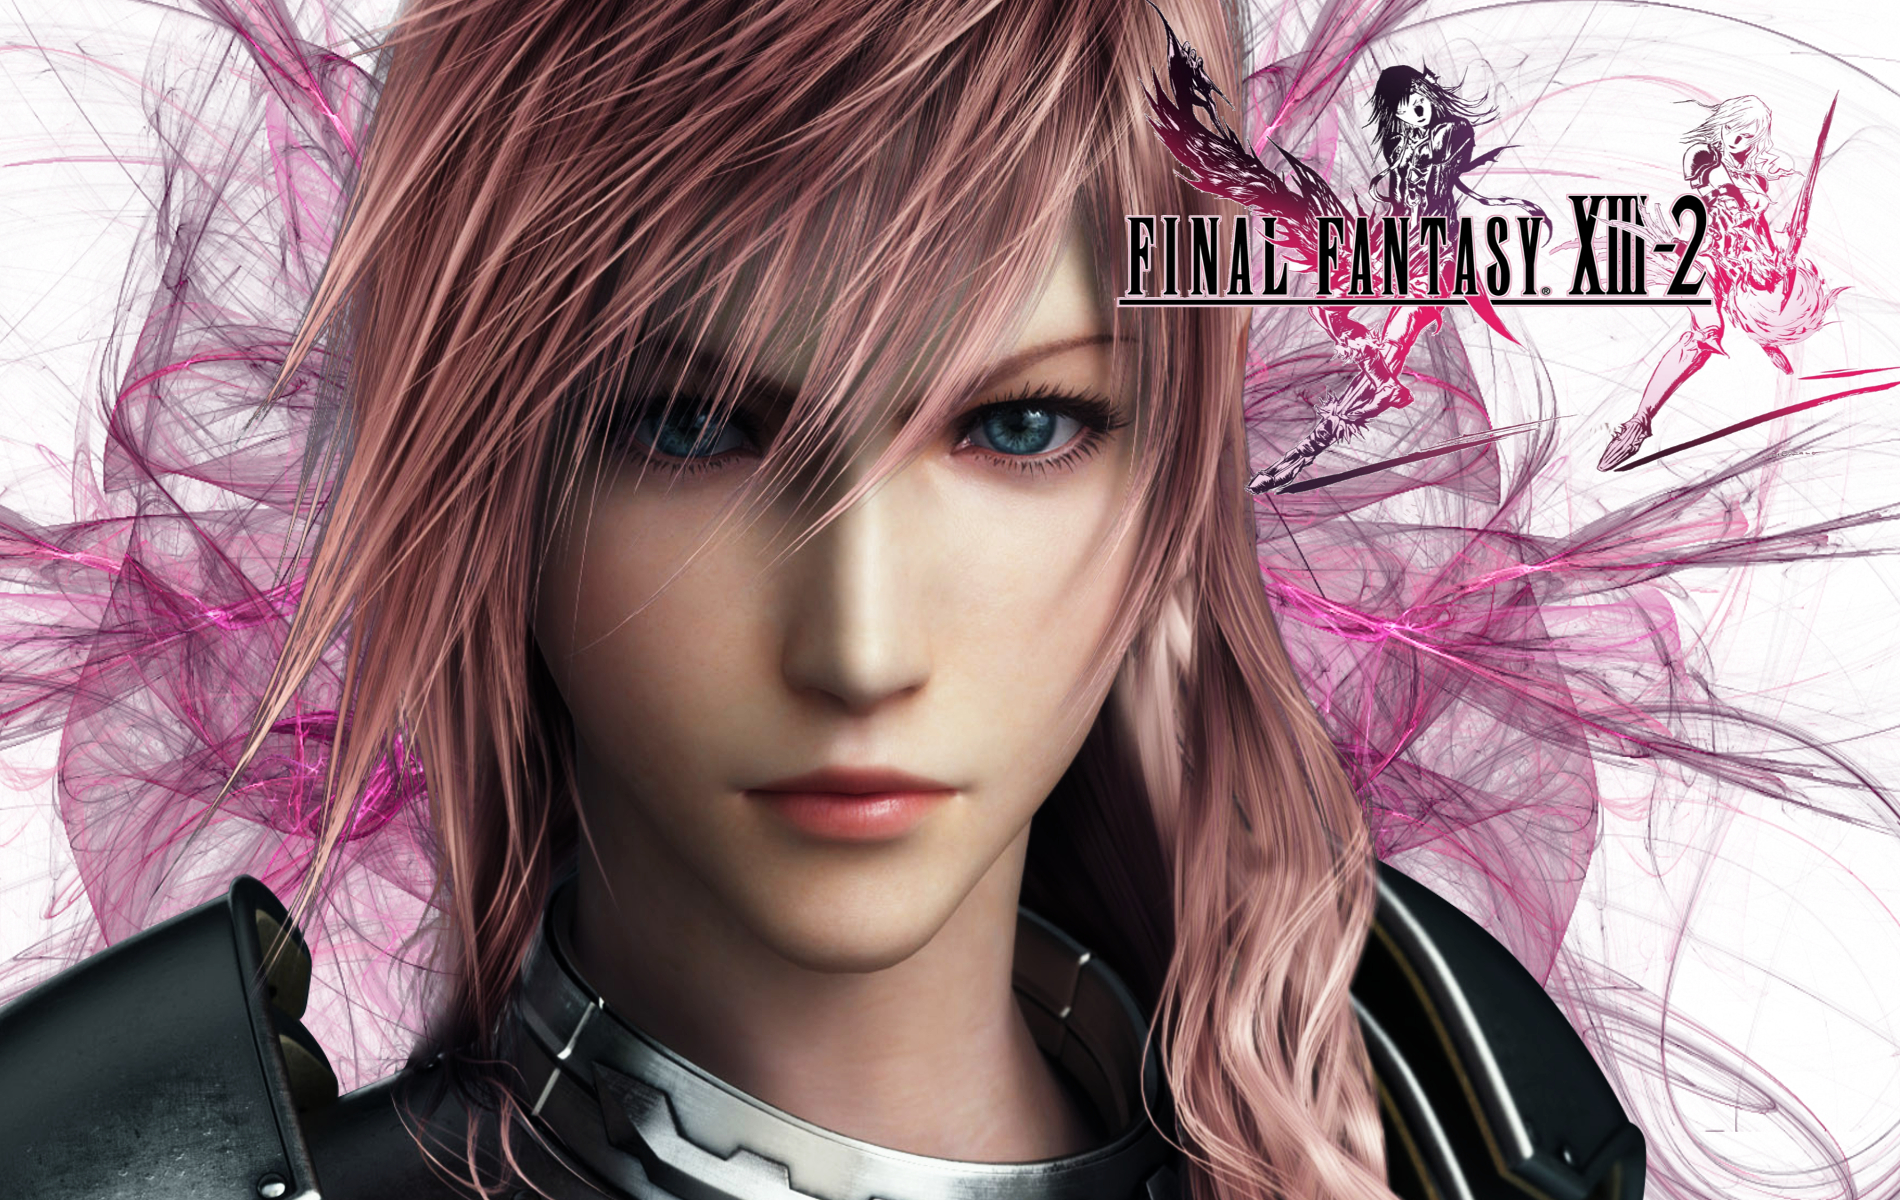 final fantasy xiii~2 (lightning)viciousjosh on deviantart